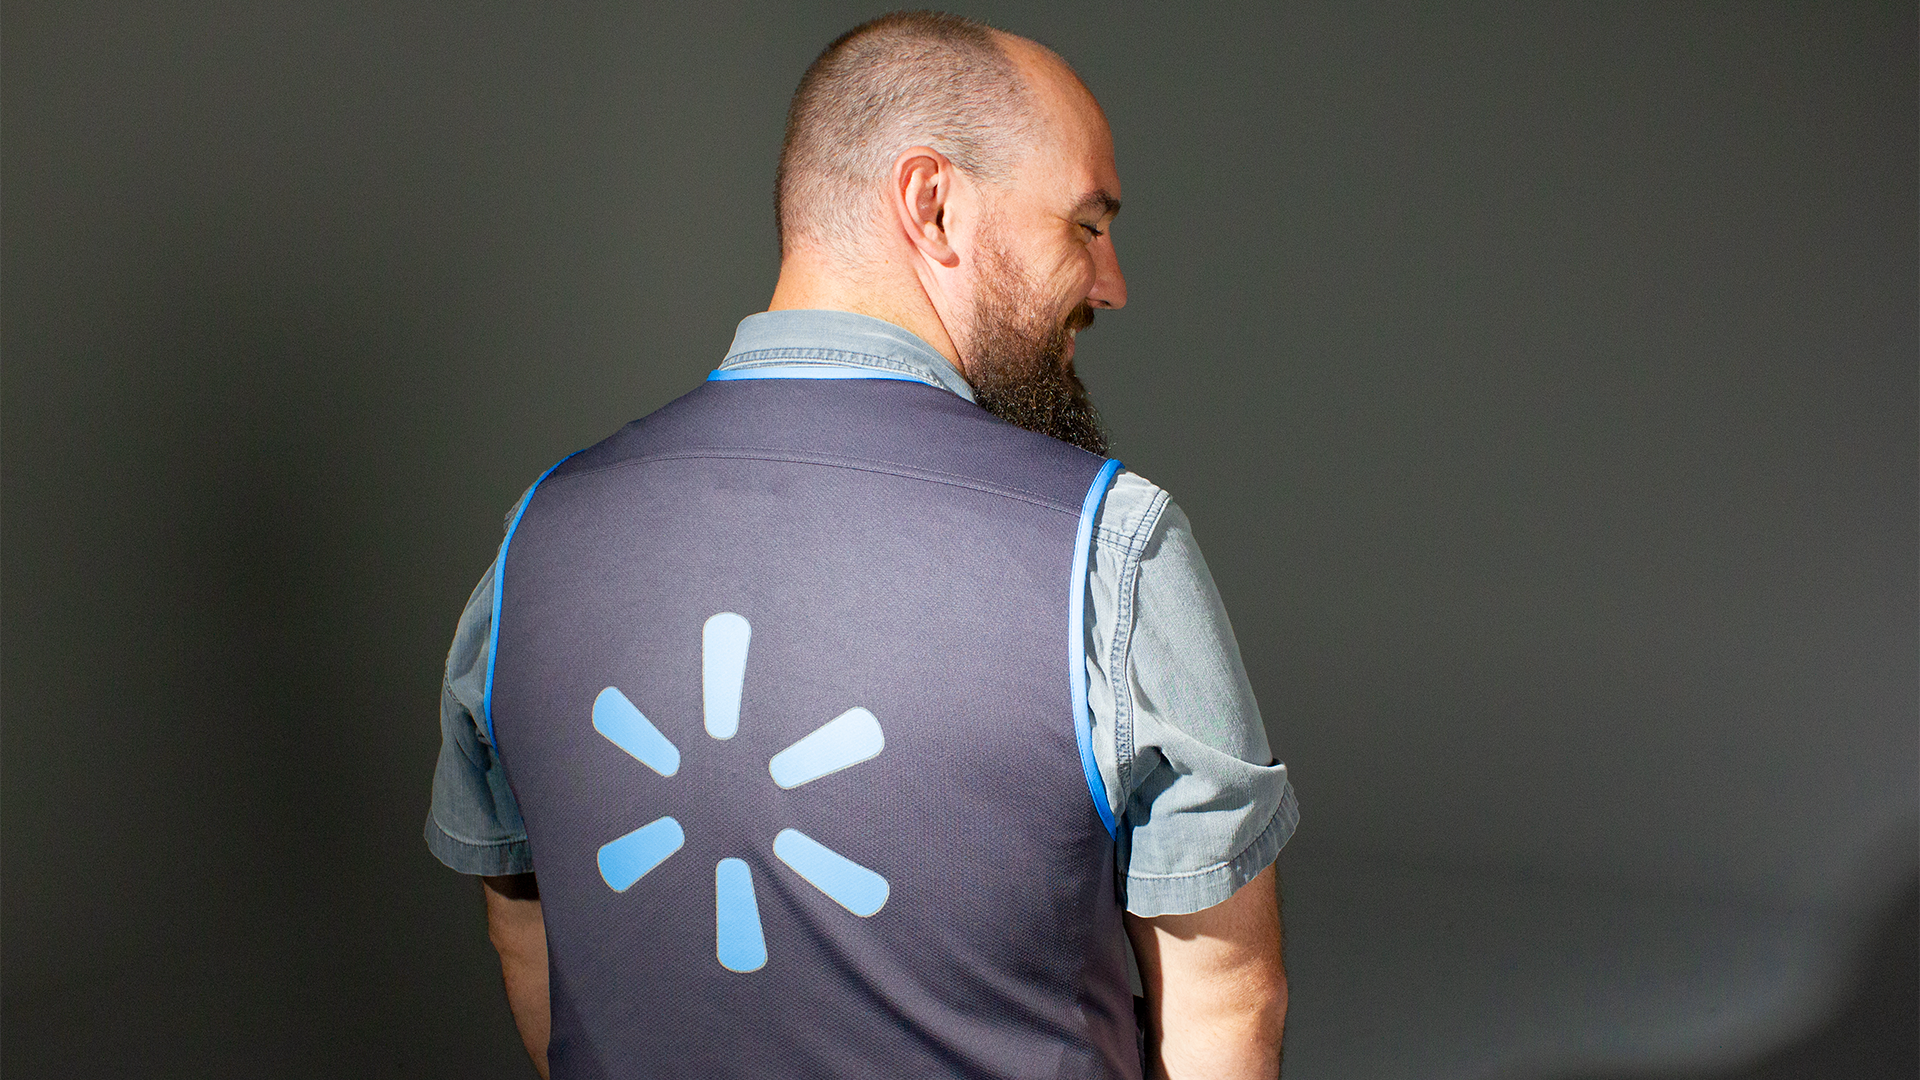 Associate wearing new blue vest showing back close up